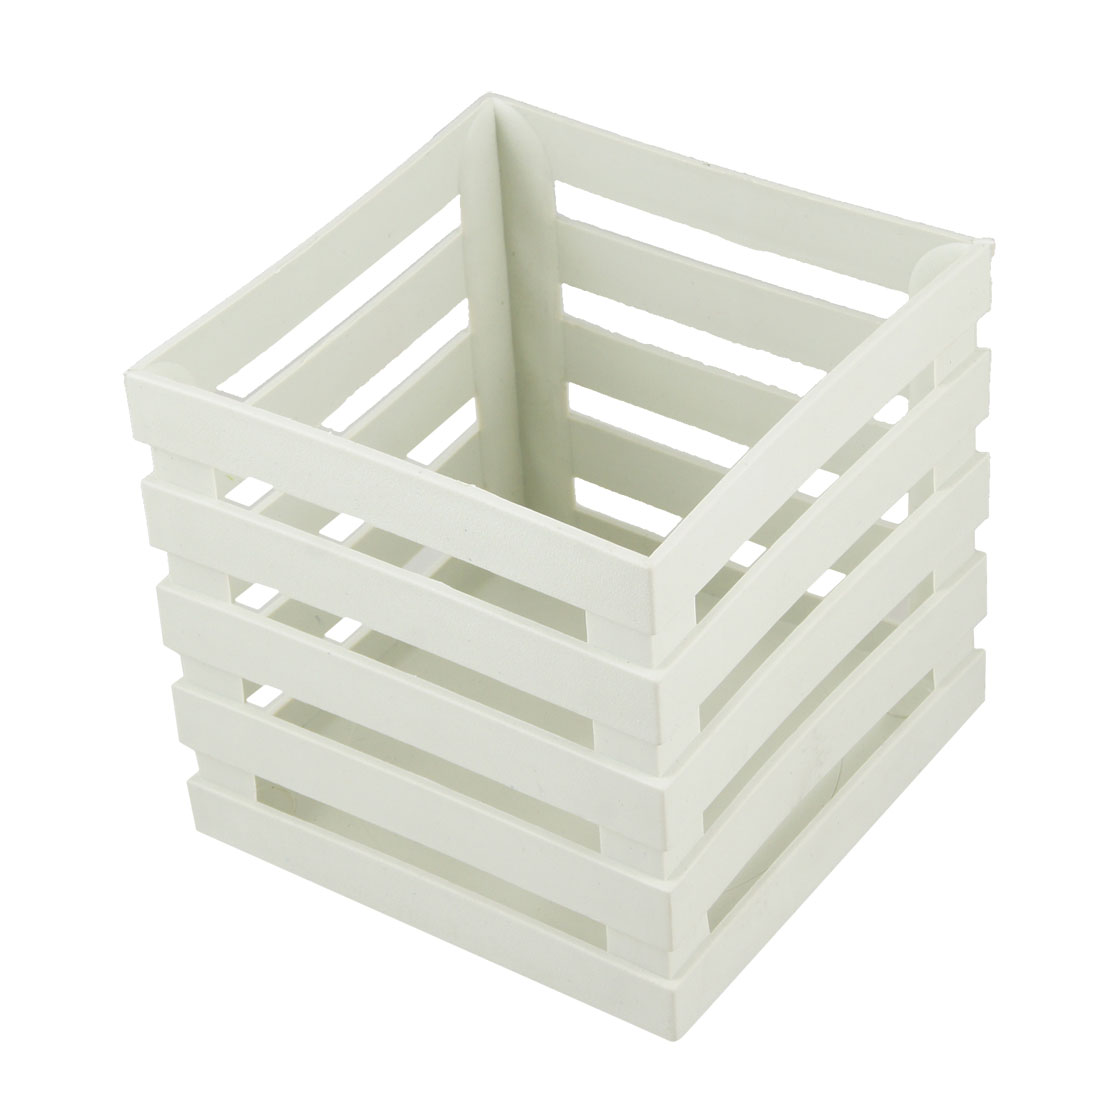 103mm Long White Square Plastic Fence Garden Flower Barrels Home Decor